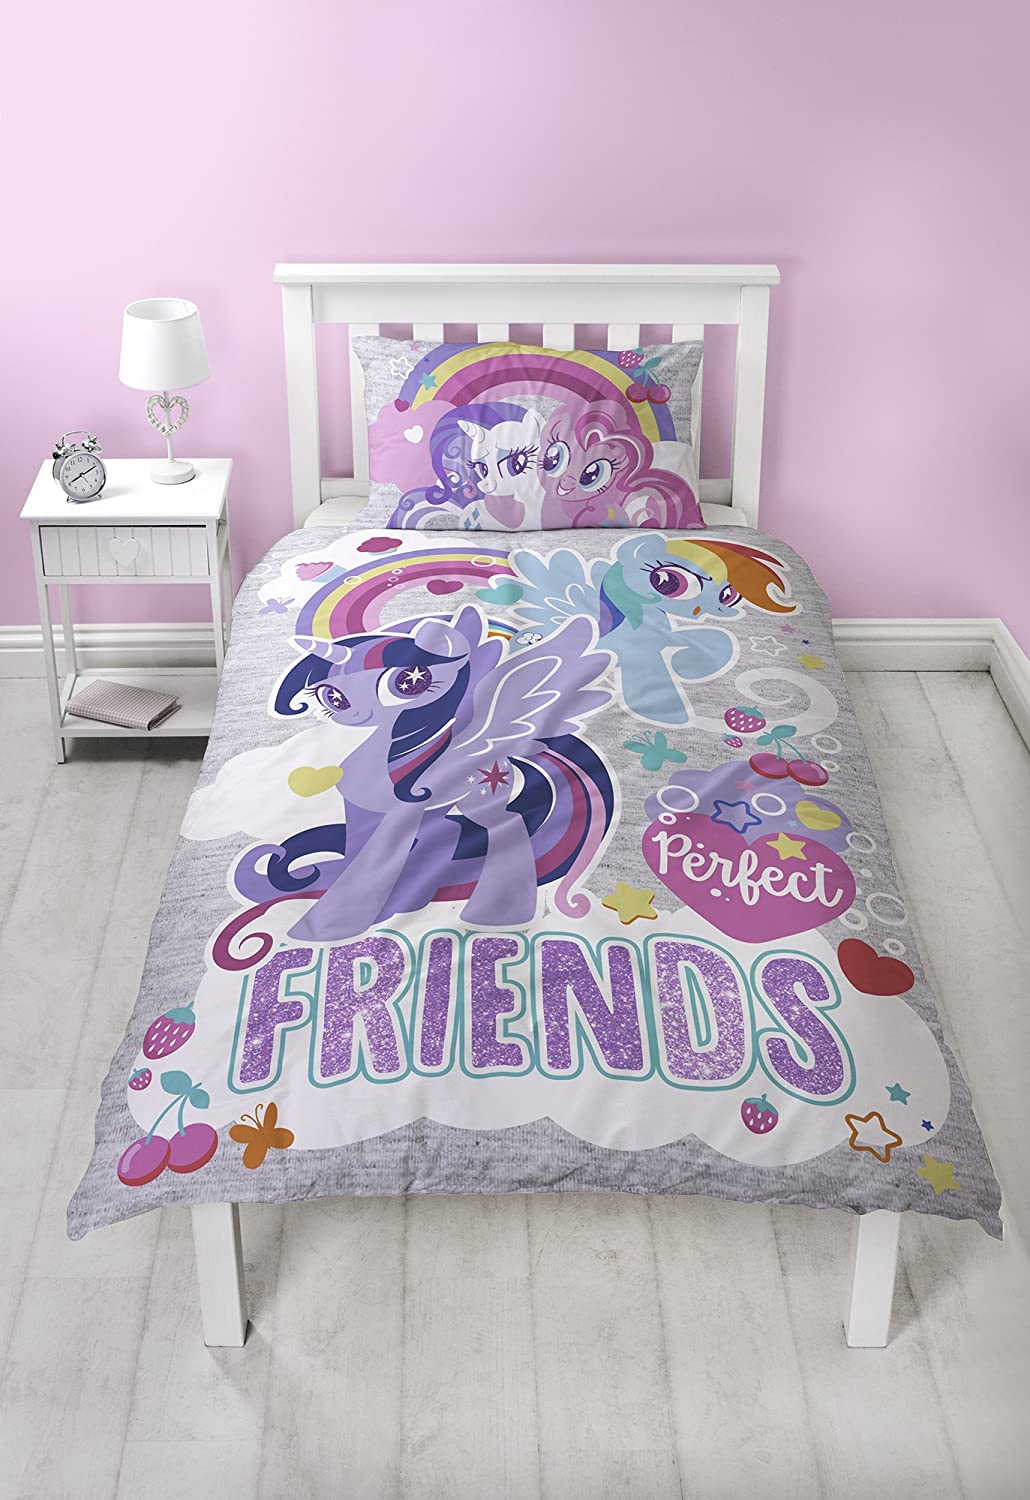 My Little Pony Crush | Childrens Bedroom 54 Inch Curtains | Perfect For Any Girls Bedroom Character World MLPCRU54001UK